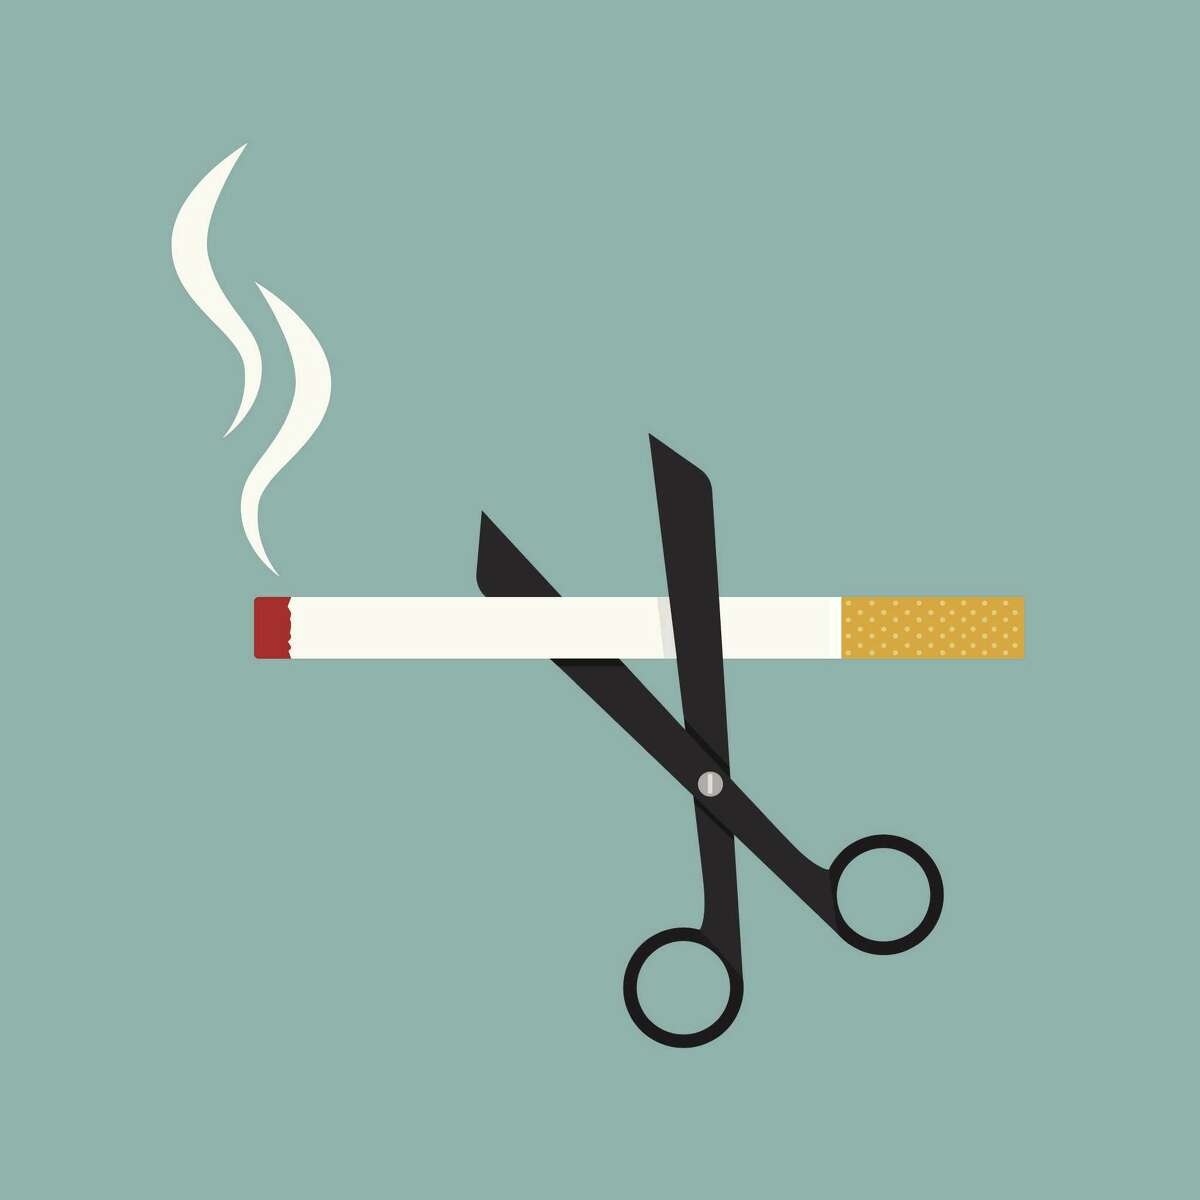 Nicotine replacement therapy (NRT) selections are geared toward taking care of the actual nicotine addiction while you work on changing behavior and habits.